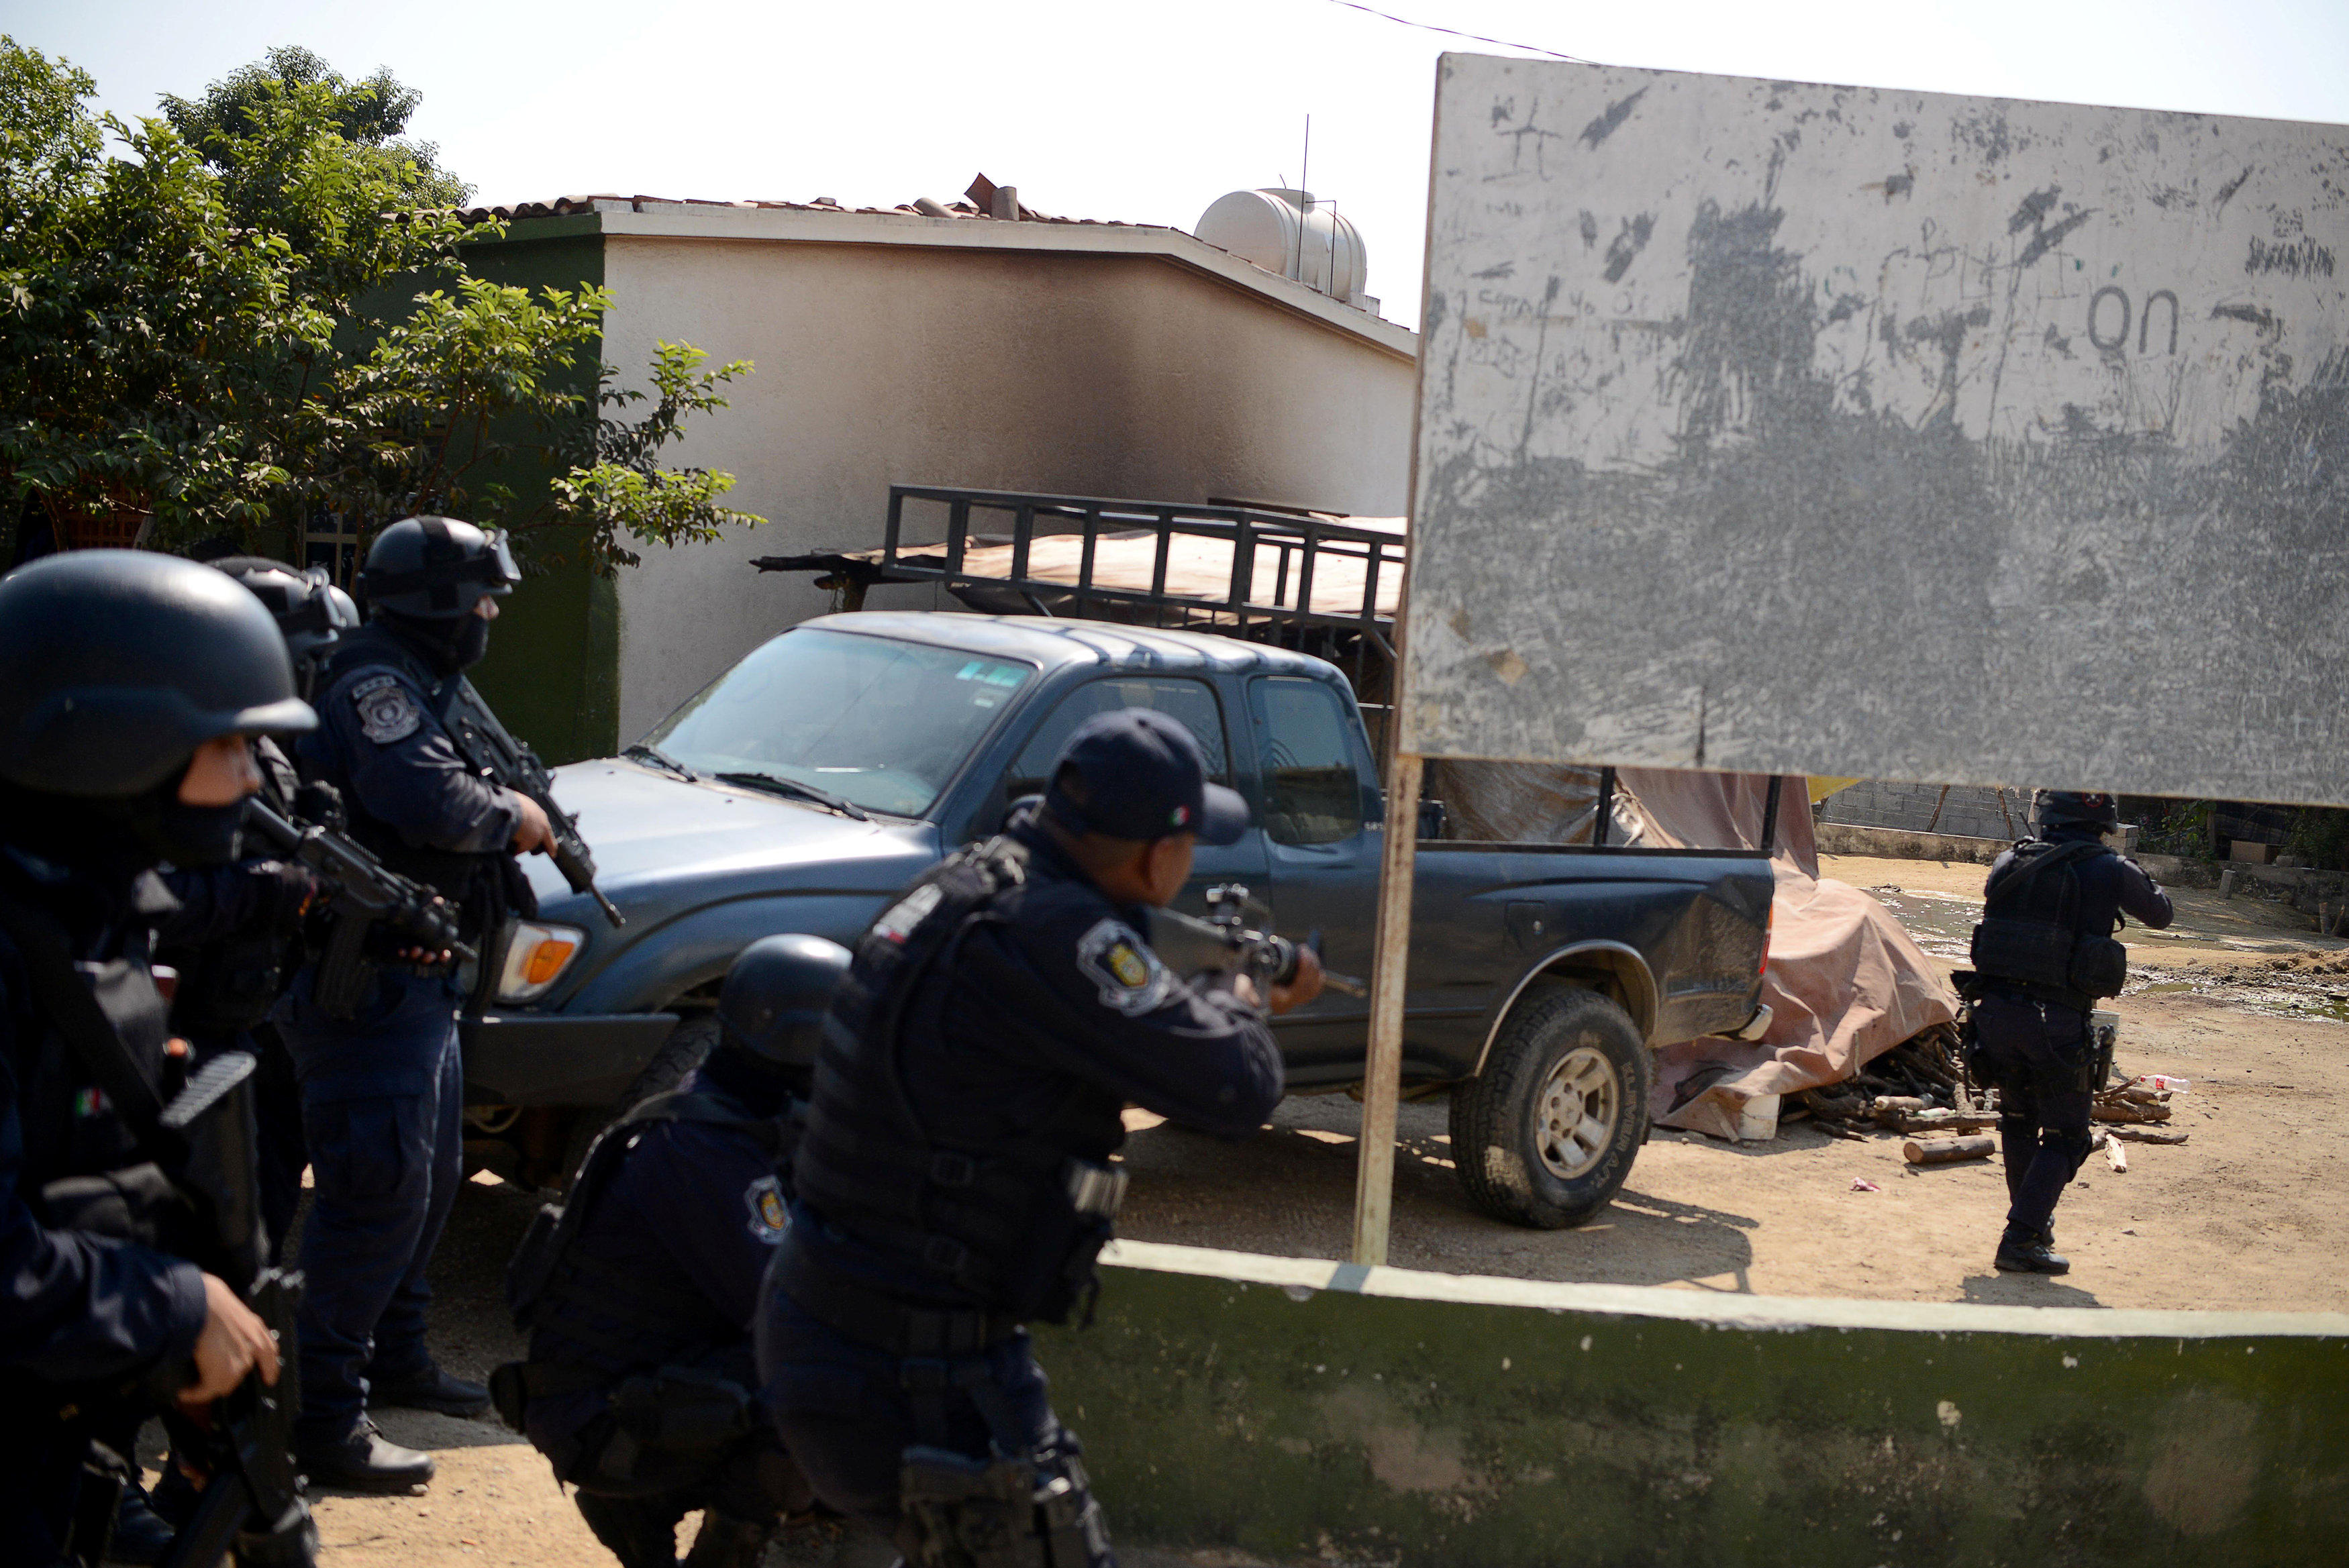 Mexico travel warning: 5 Mexican states get highest